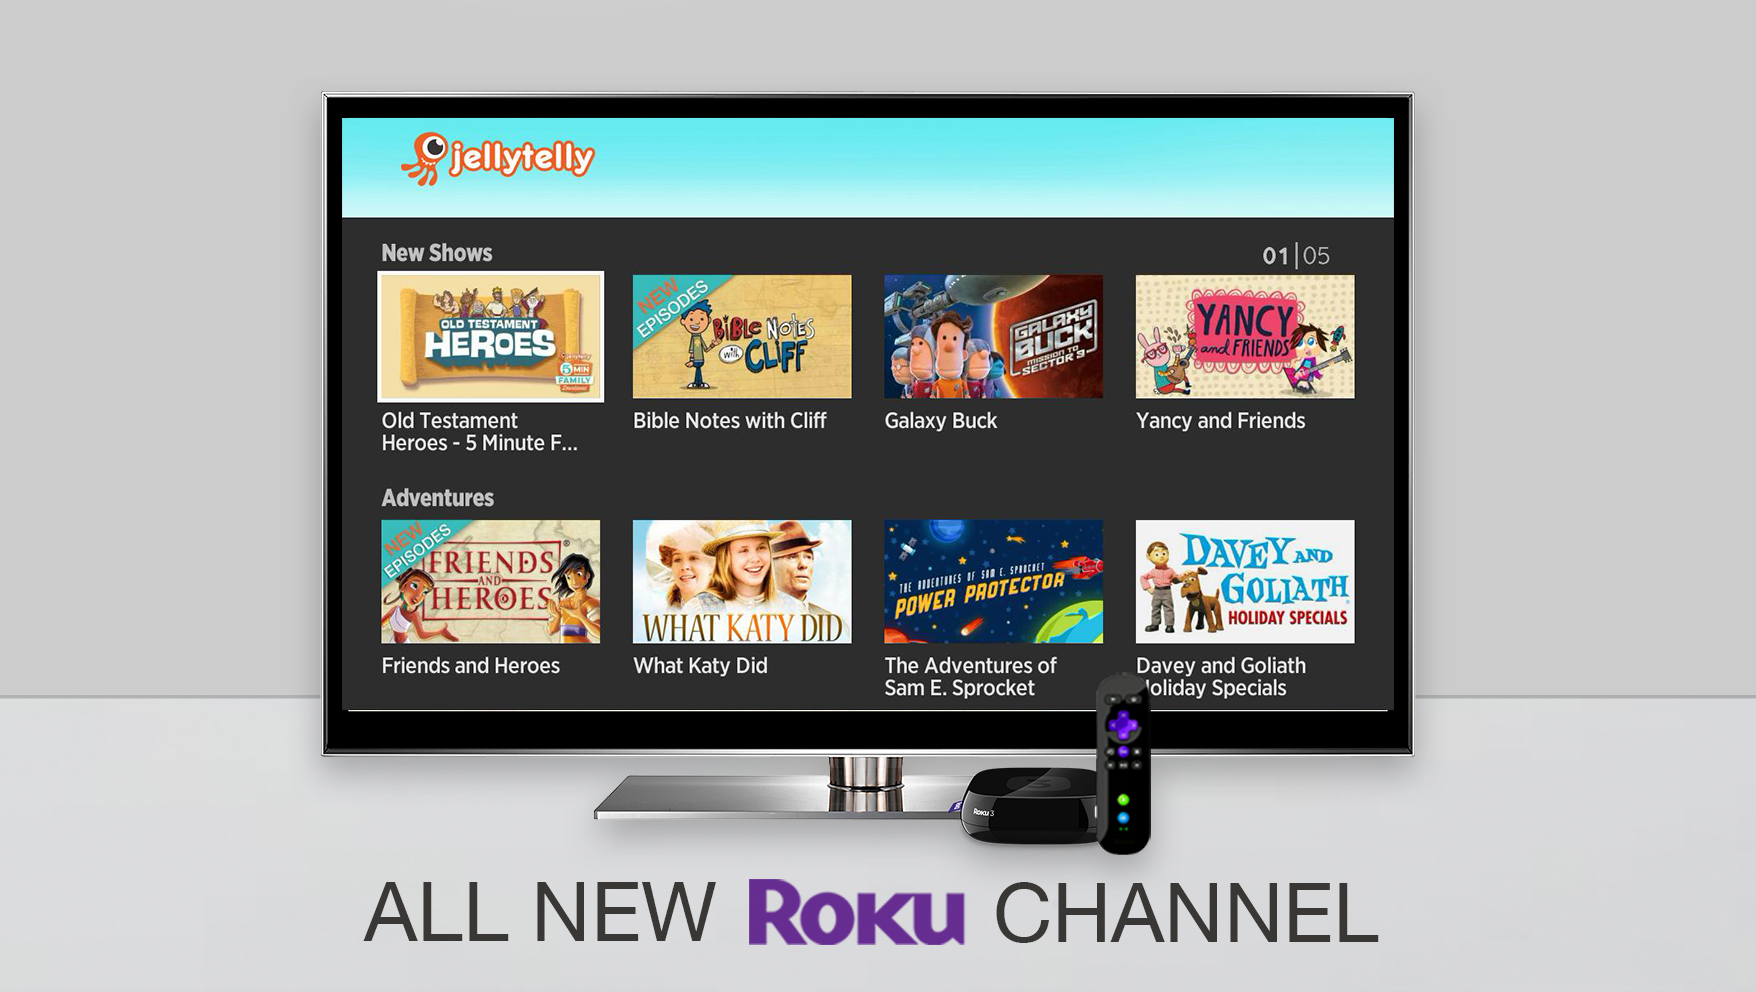 Introducing the All New JellyTelly Roku Channel!